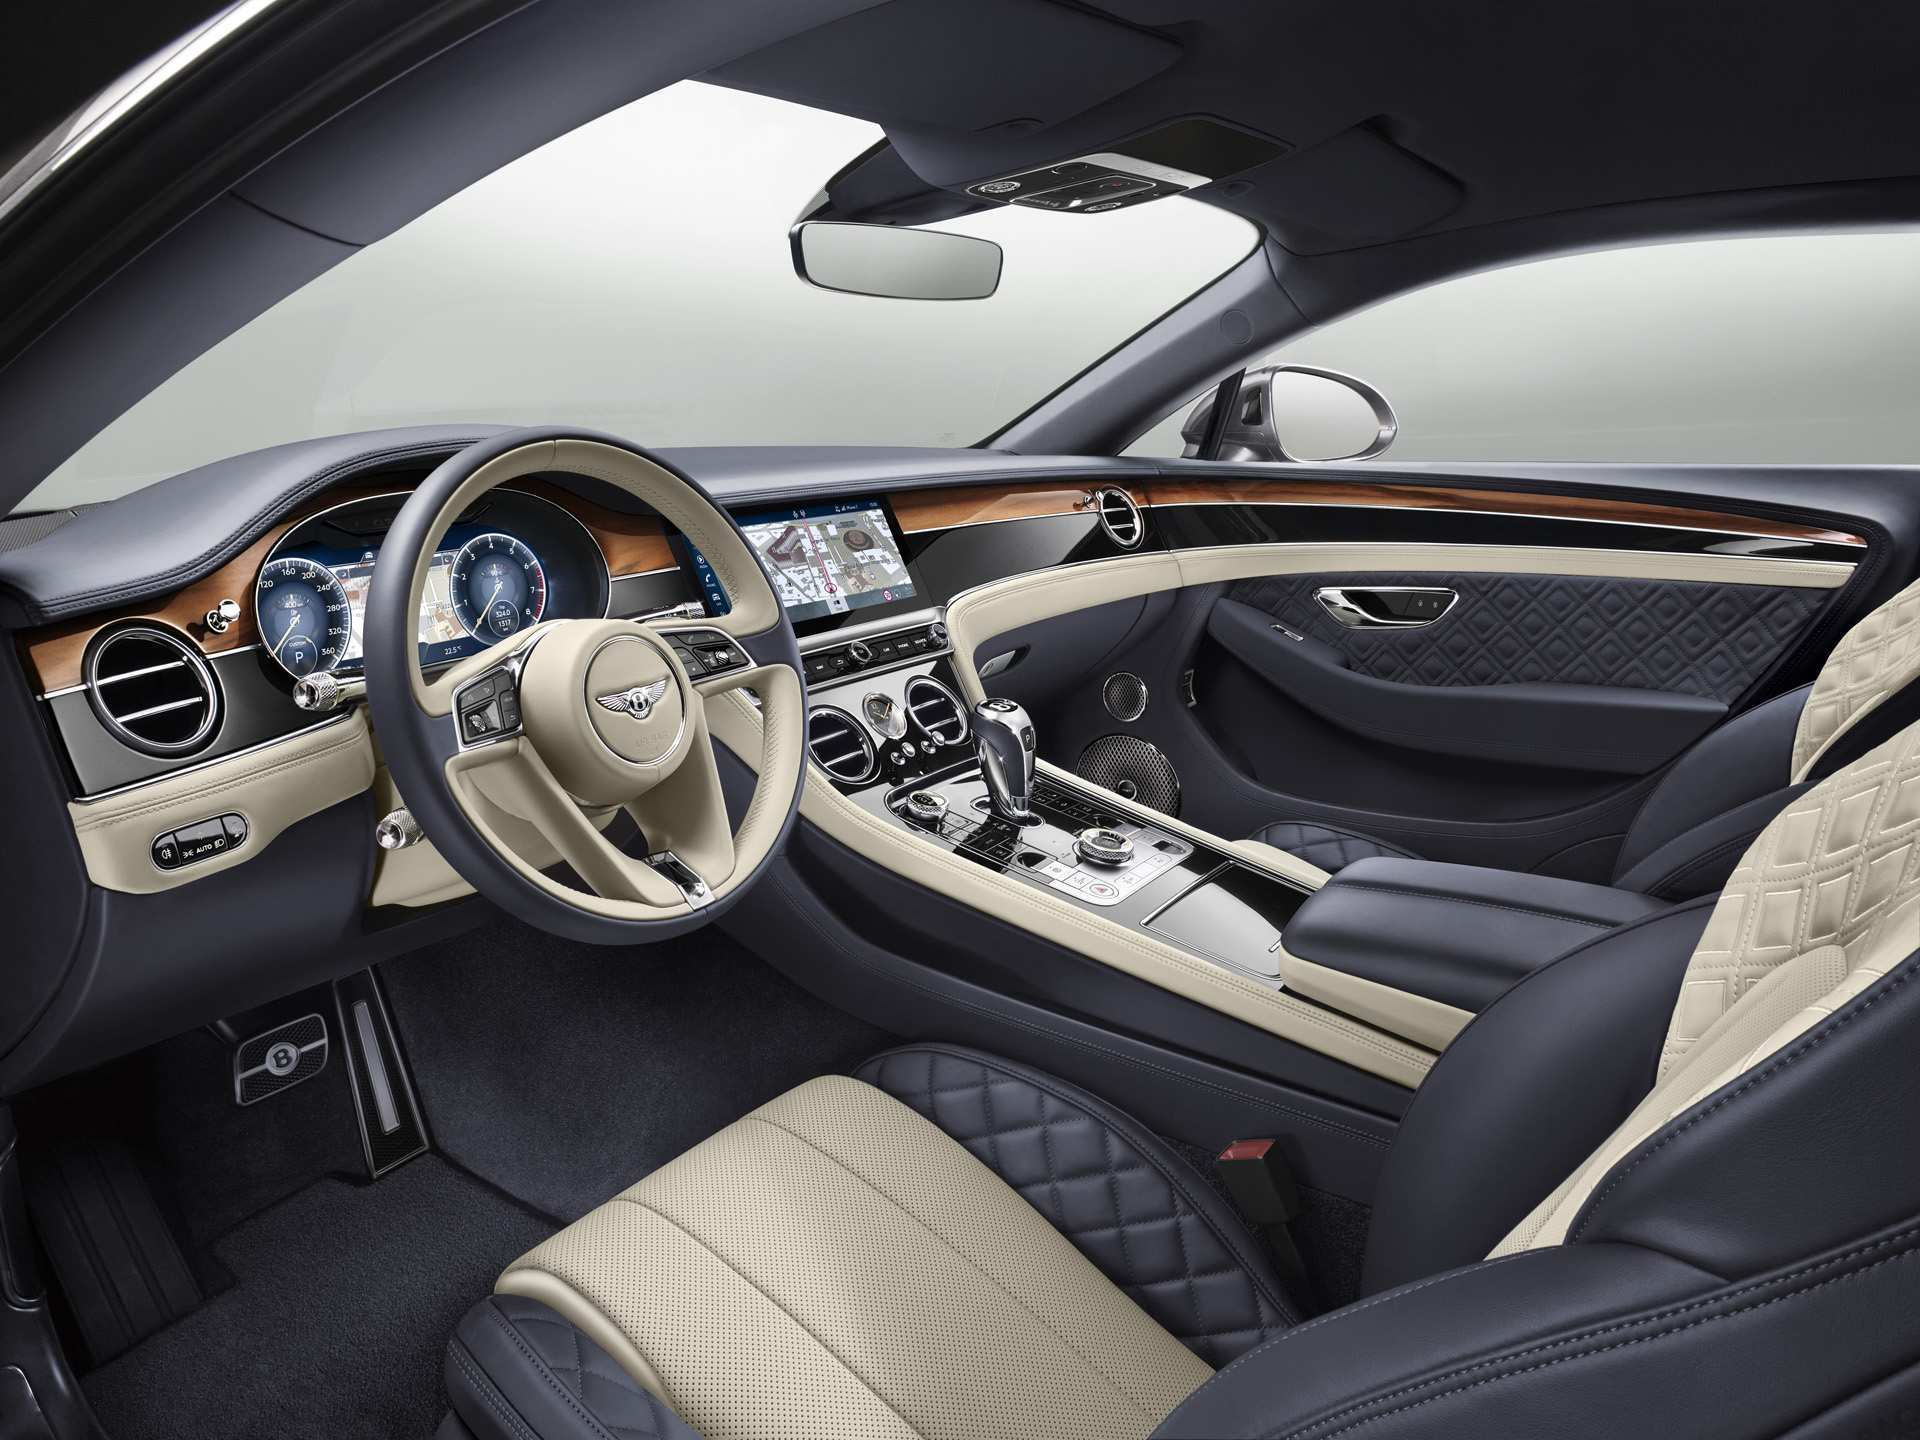 57 Great 2019 Bentley Flying Spur Interior Interior with 2019 Bentley Flying Spur Interior